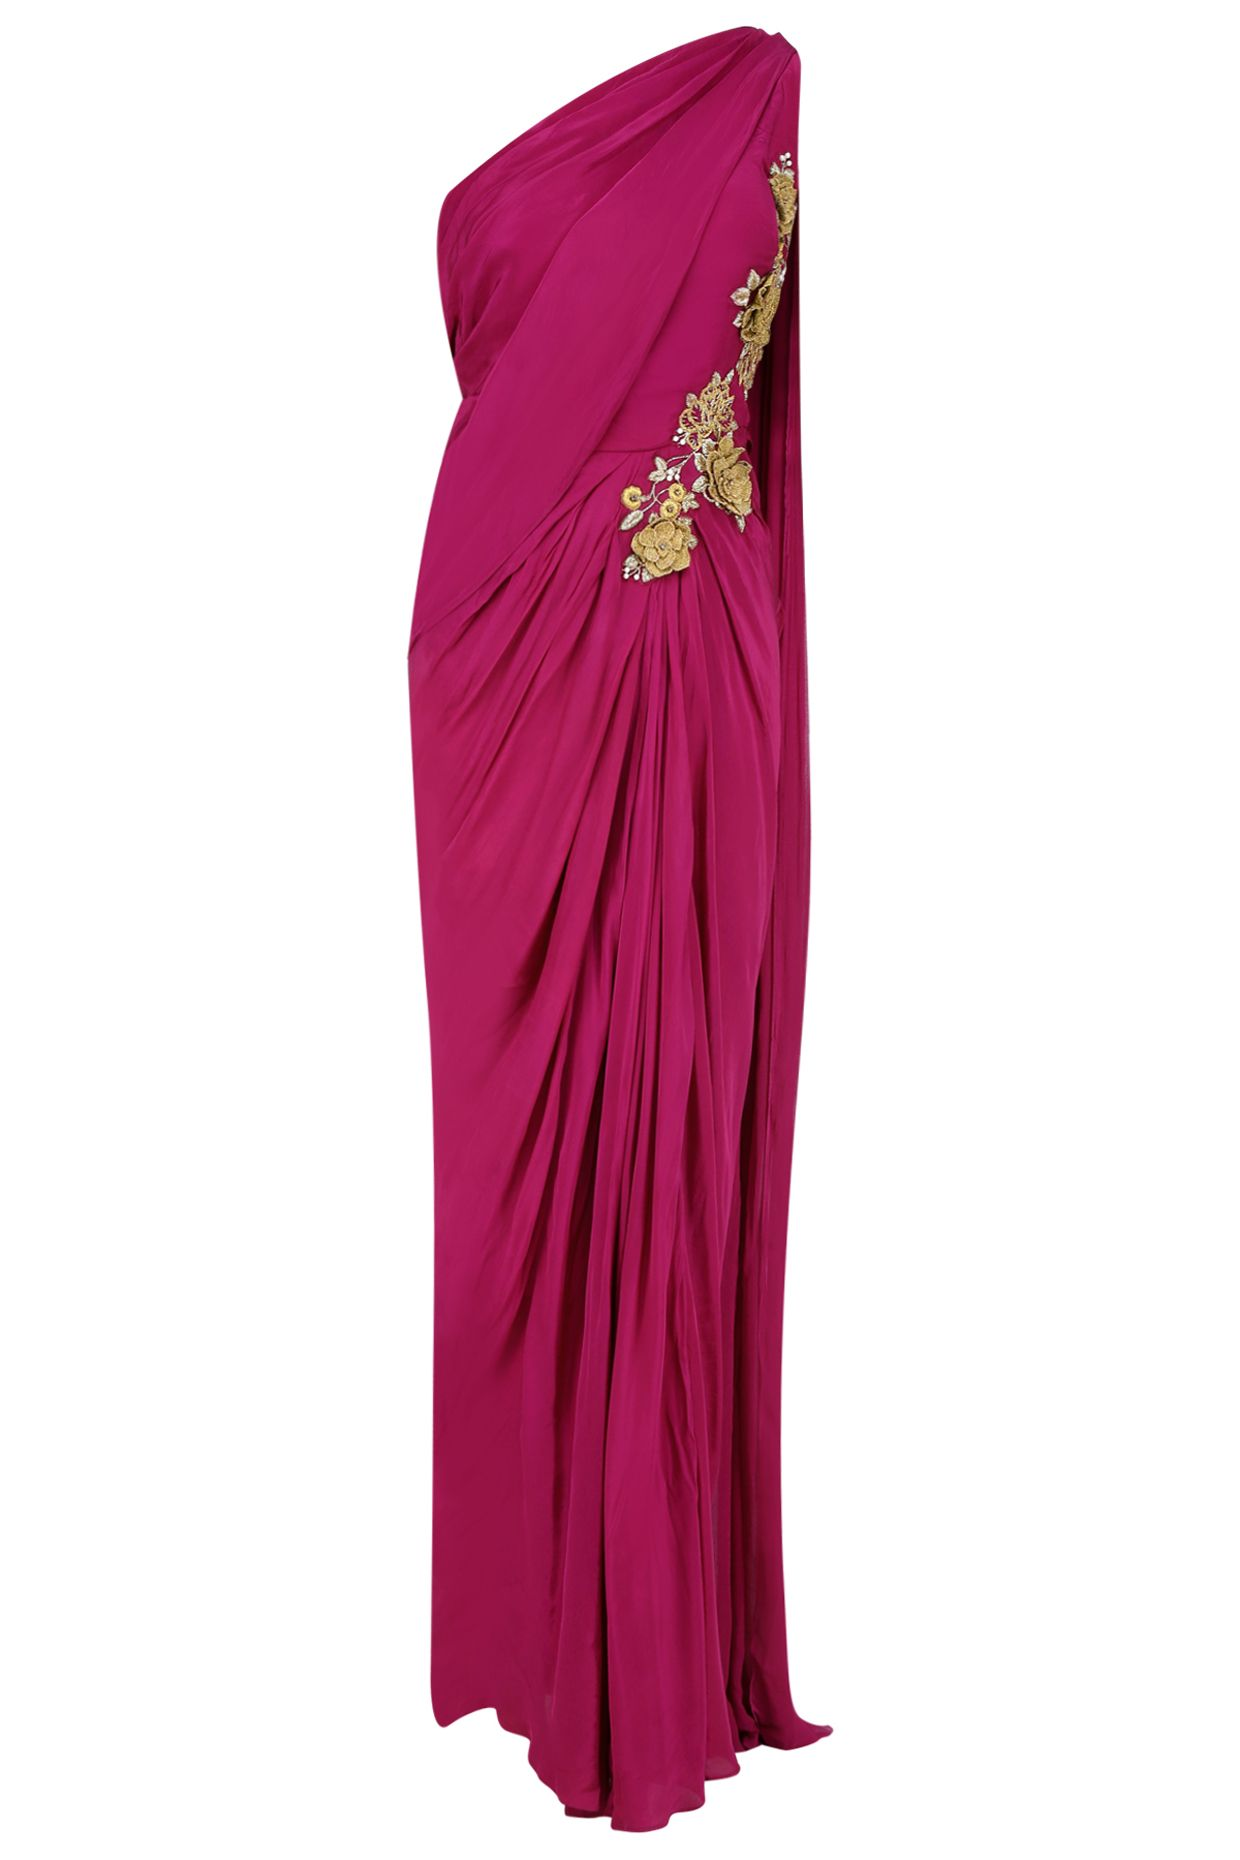 49cbe9f6aed8e7 Burgundy 3D floral applique work one shoulder saree gown available only at  Pernia's Pop Up Shop.